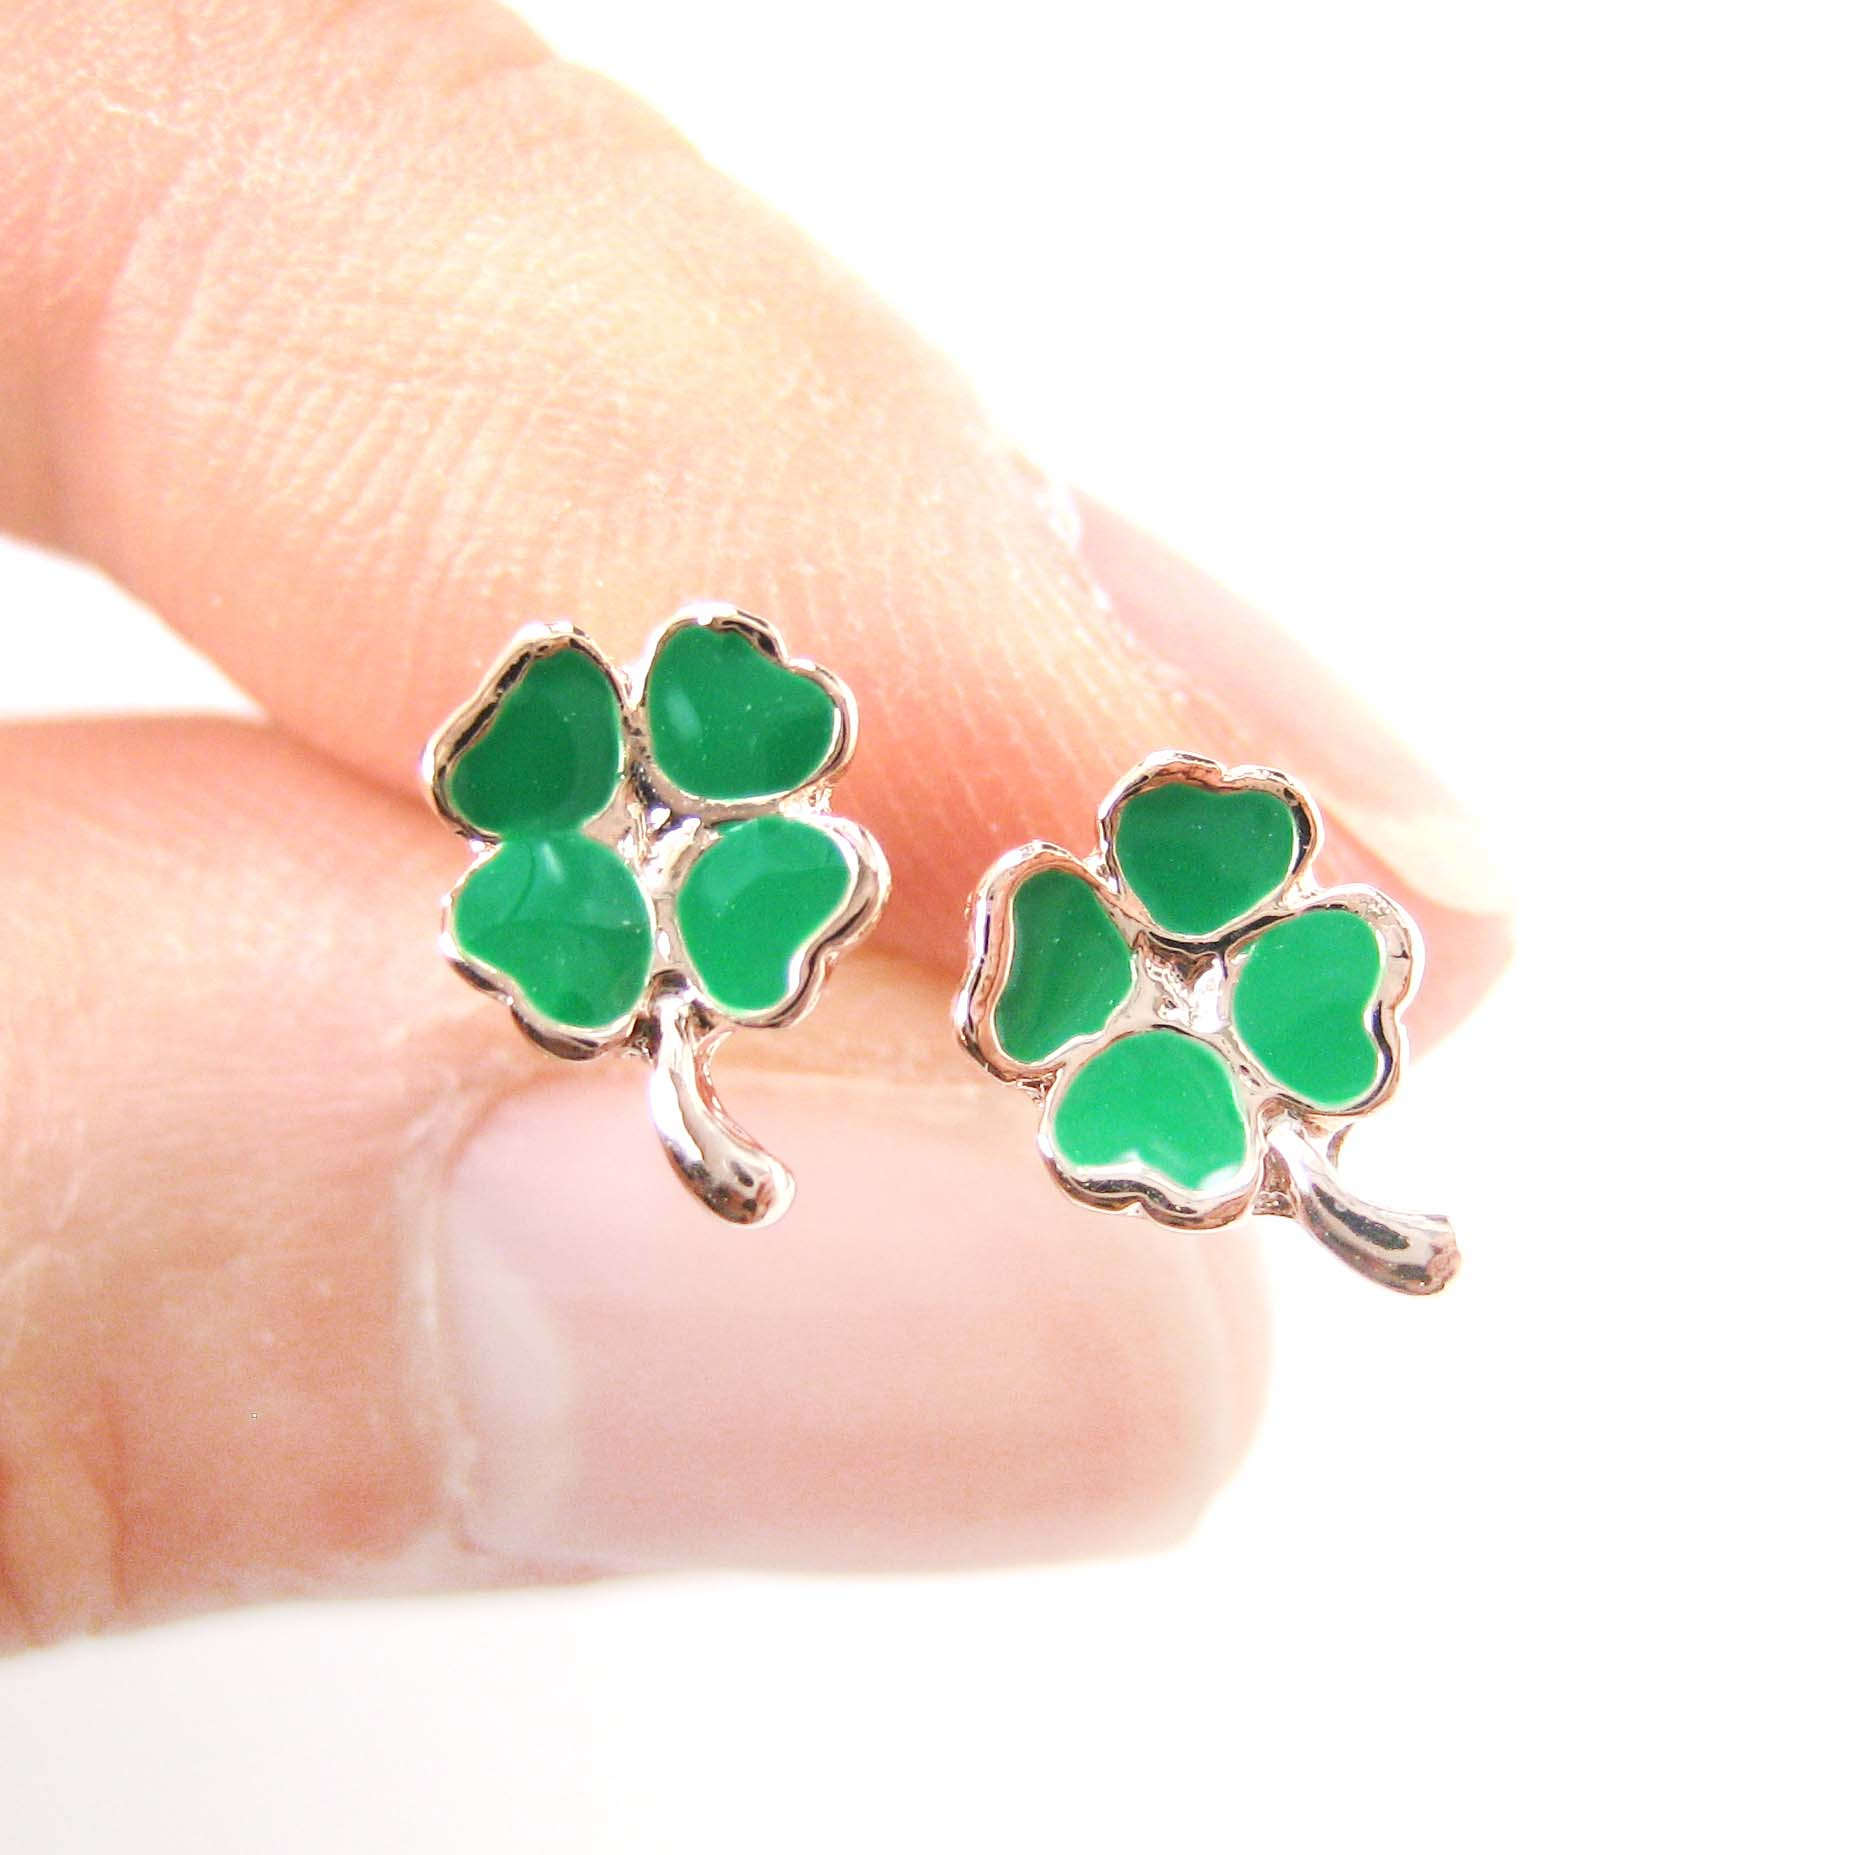 clover earrings studs dotoly plus small four leaf clover shaped stud earrings 8448